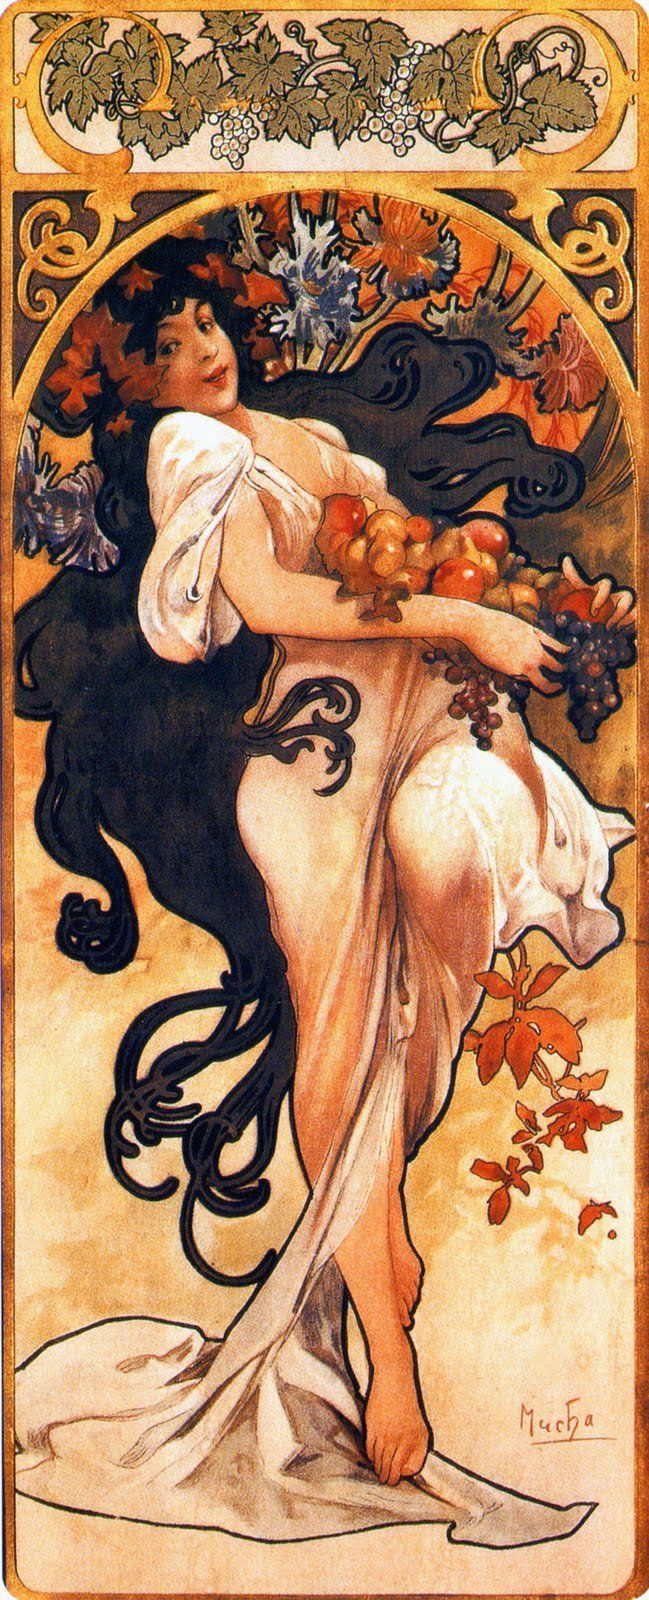 "<a href=""https://commons.wikimedia.org/wiki/File:Mucha_seasons_1897_autumn.jpg"">Alphonse Mucha, ""Four Seasons,""&nbsp;Autumn,"